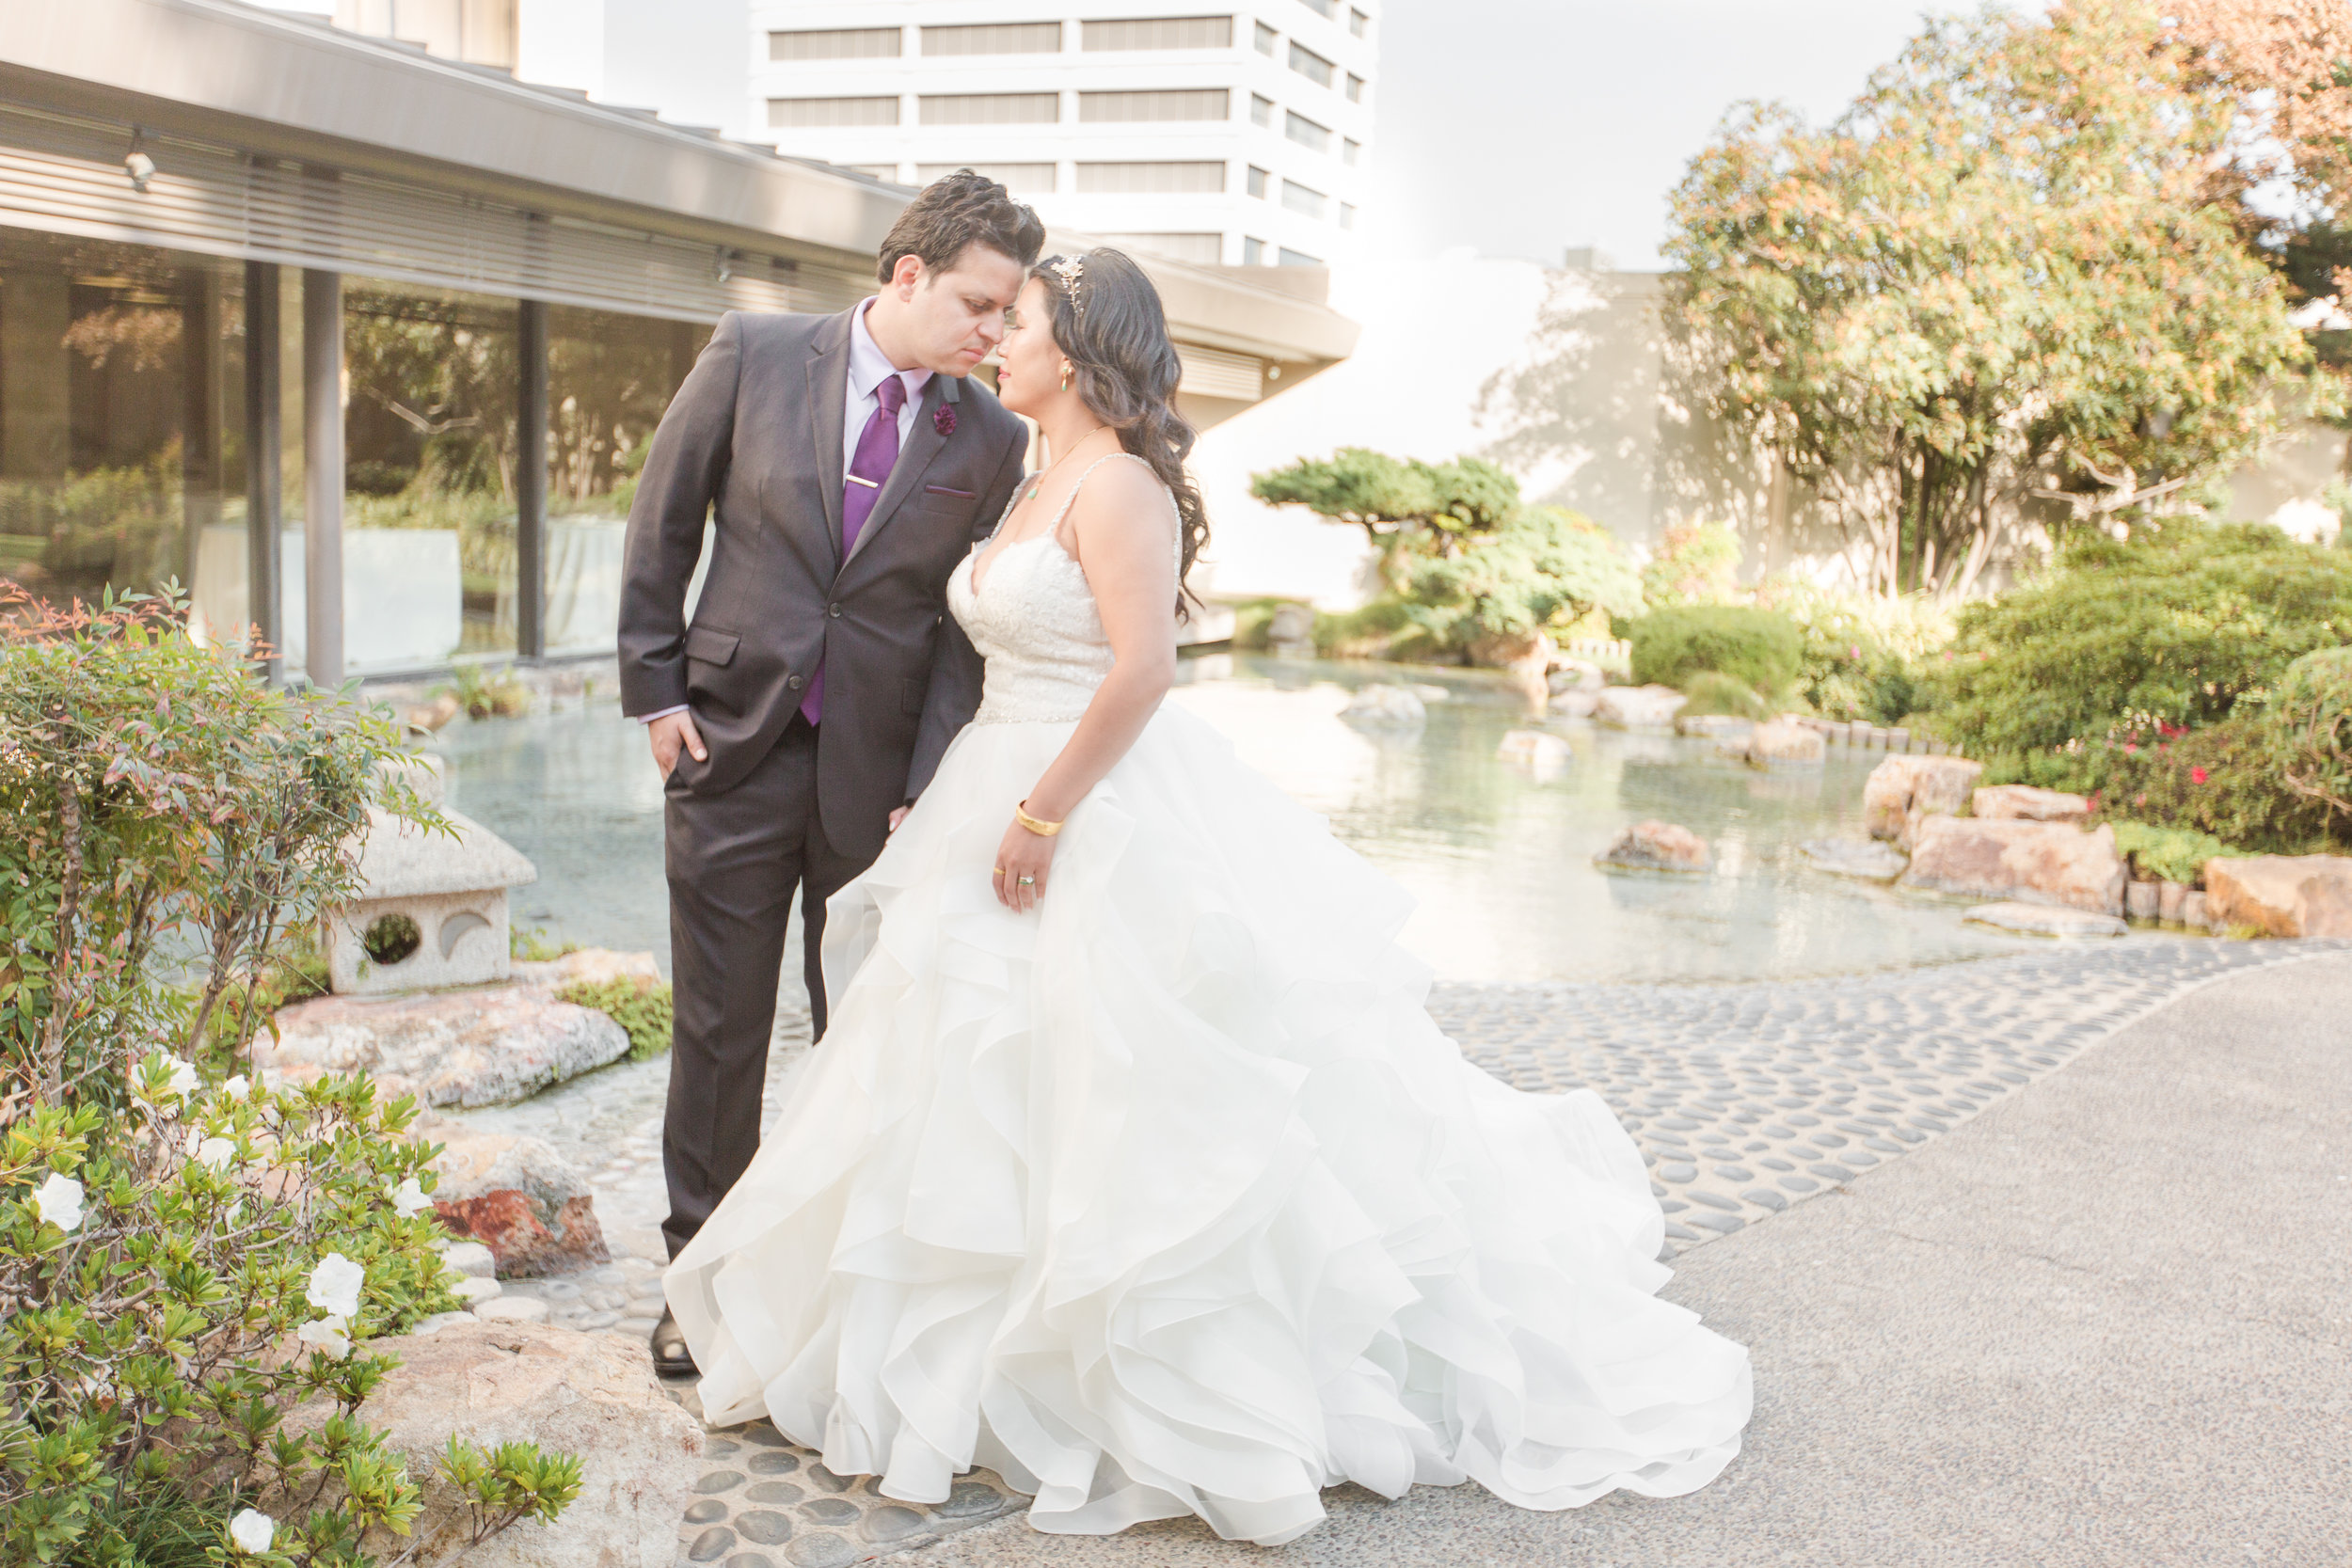 dtlagardenweddingphotography-1851.JPG